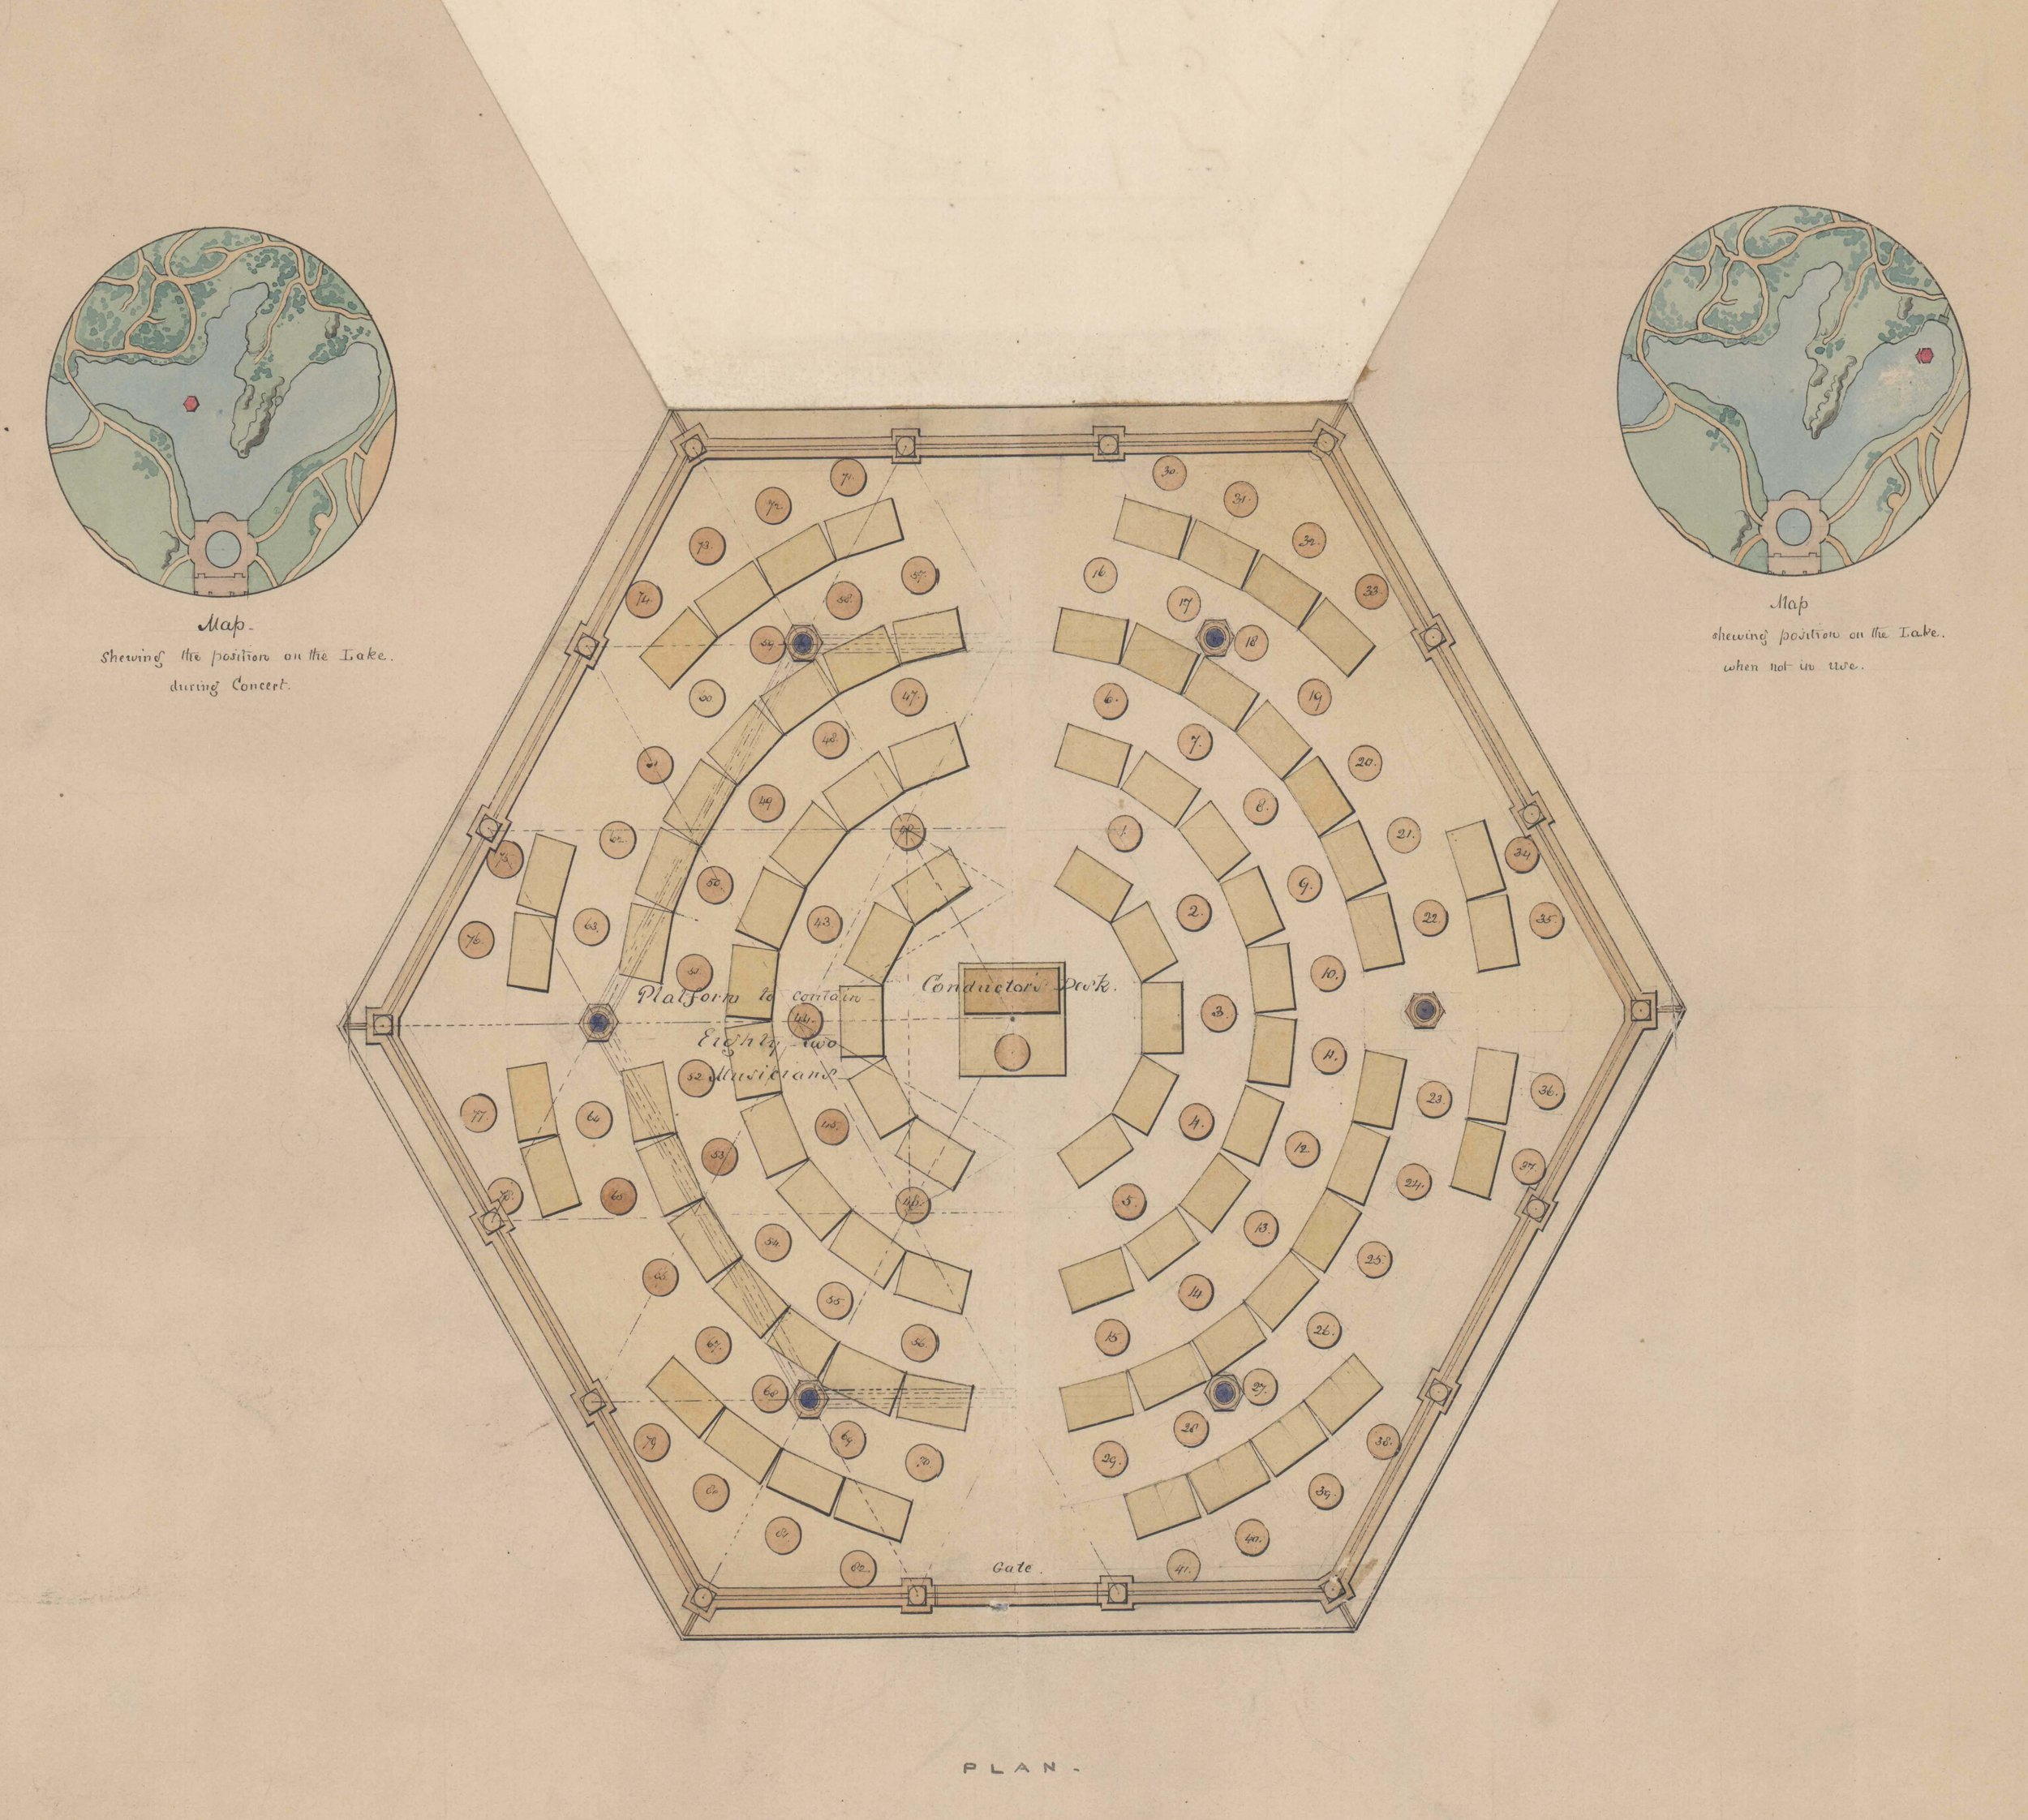 These detail maps show the pavilion's positions on the Lake during a concert and when not in use; the central panel lifts up to reveal a second seating arrangement for a larger orchestra.